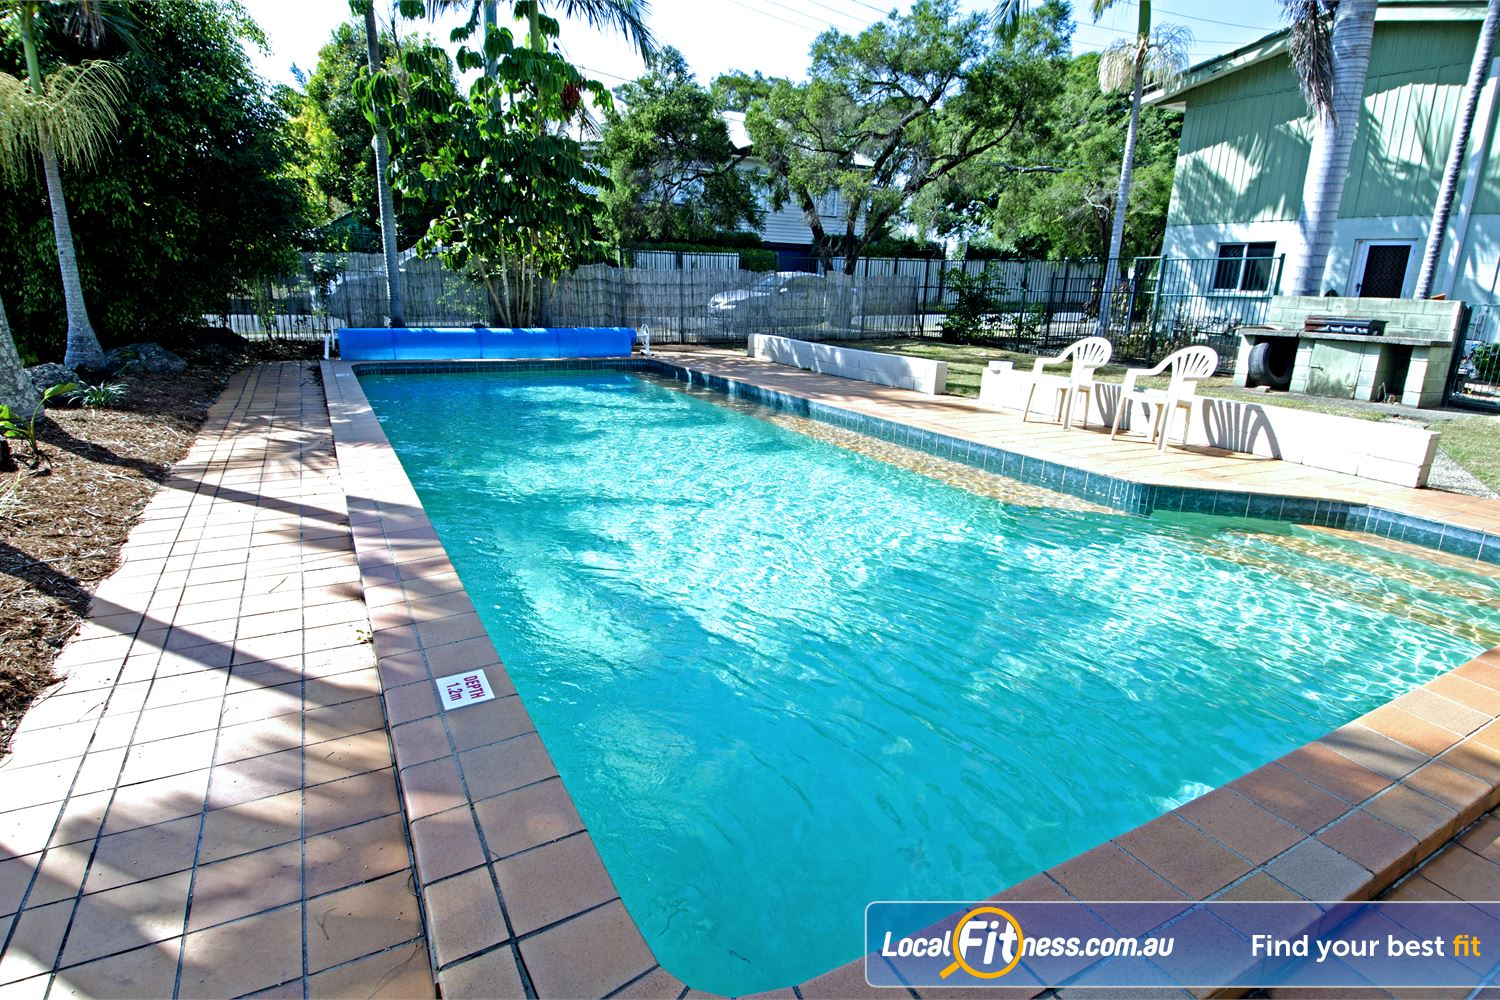 Goodlife Health Clubs Near Sherwood The Graceville swimming pool is great for lap swimming and for the whole family.